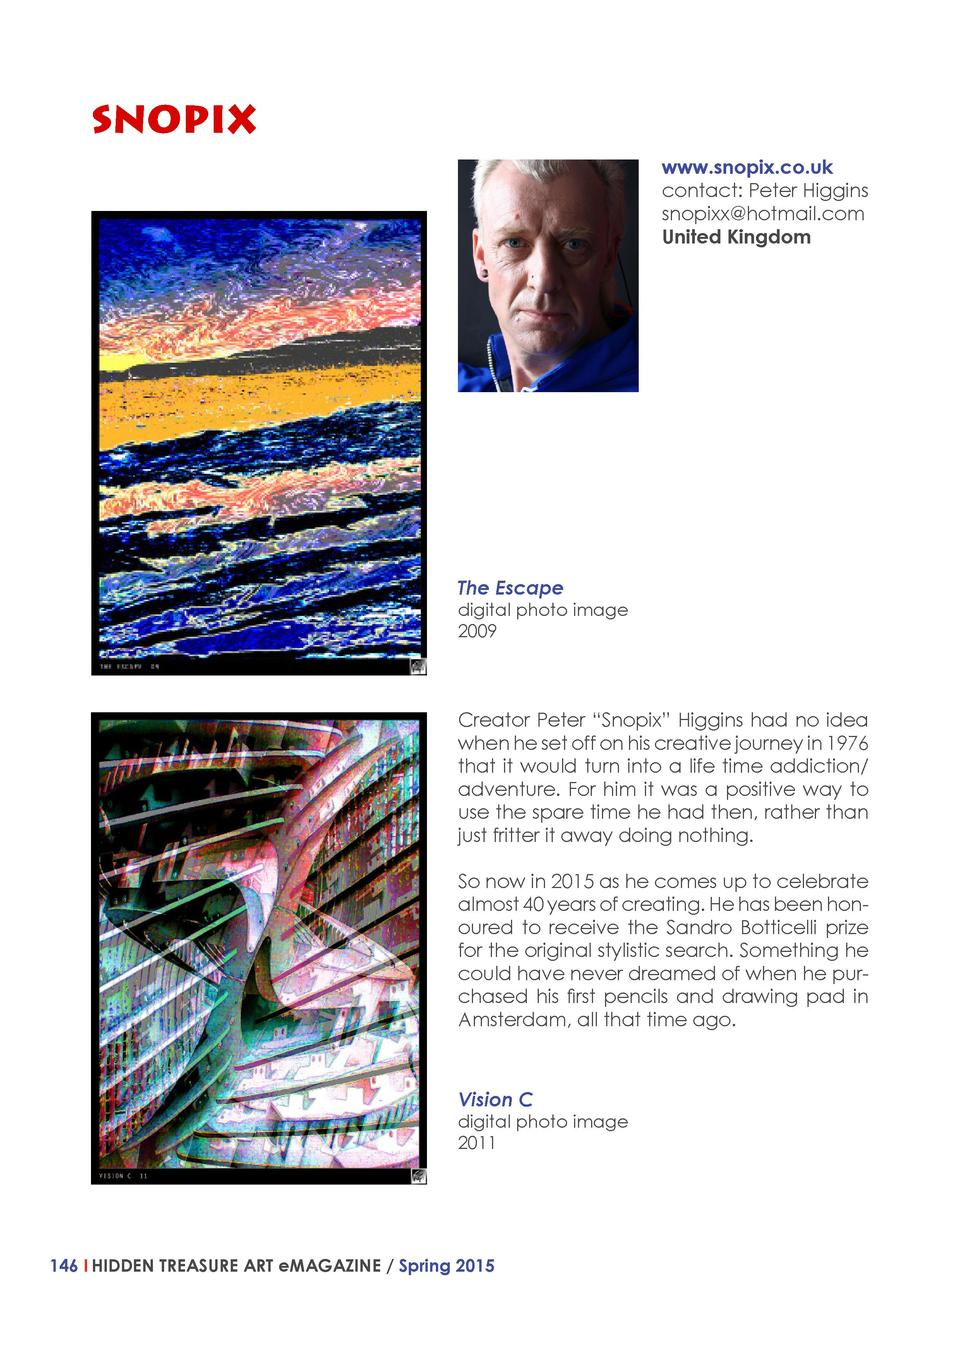 SNOPIX www.snopix.co.uk contact  Peter Higgins snopixx hotmail.com United Kingdom  The Escape  digital photo image 2009  C...